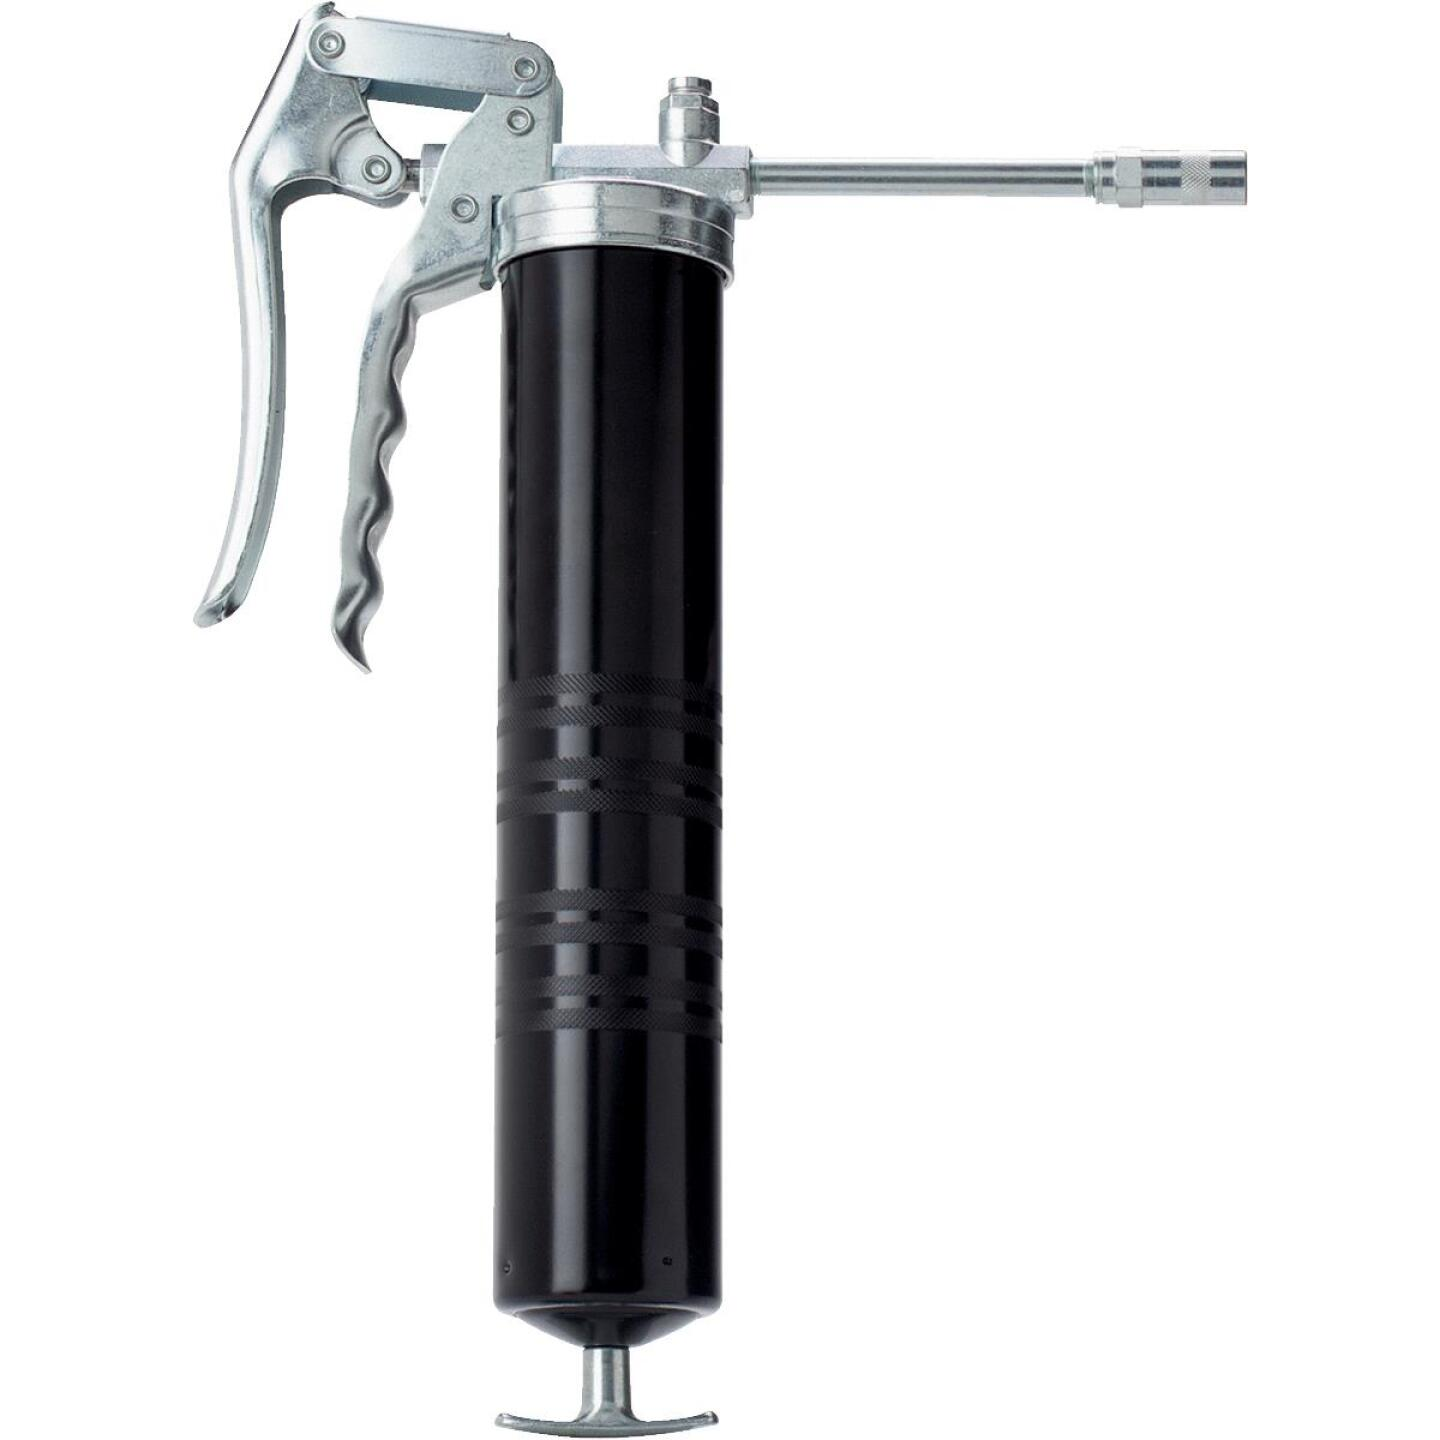 Plews LubriMatic 14 Oz. 5000 psi Pistol Grease Gun Image 1